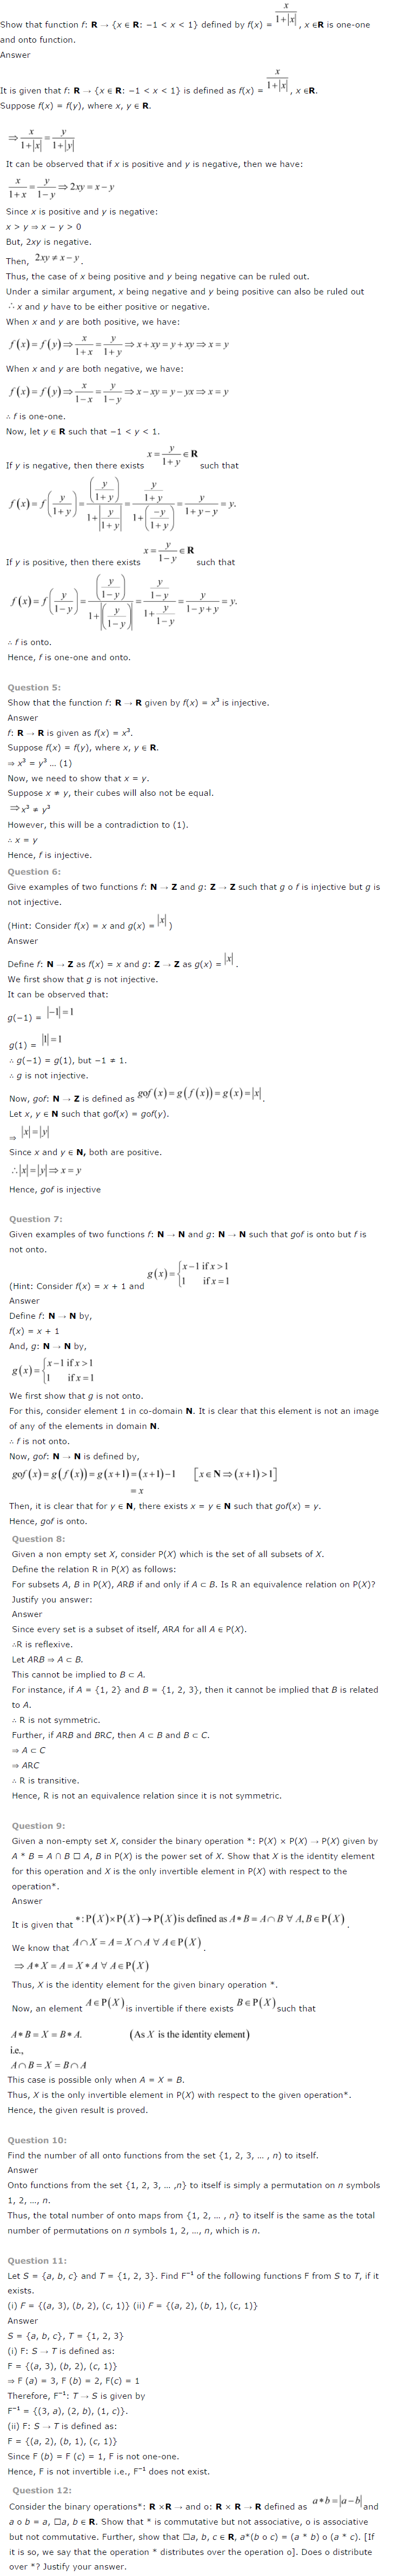 NCERT Solutions For Class 12 Maths Chapter 1 Relations and Functions 11